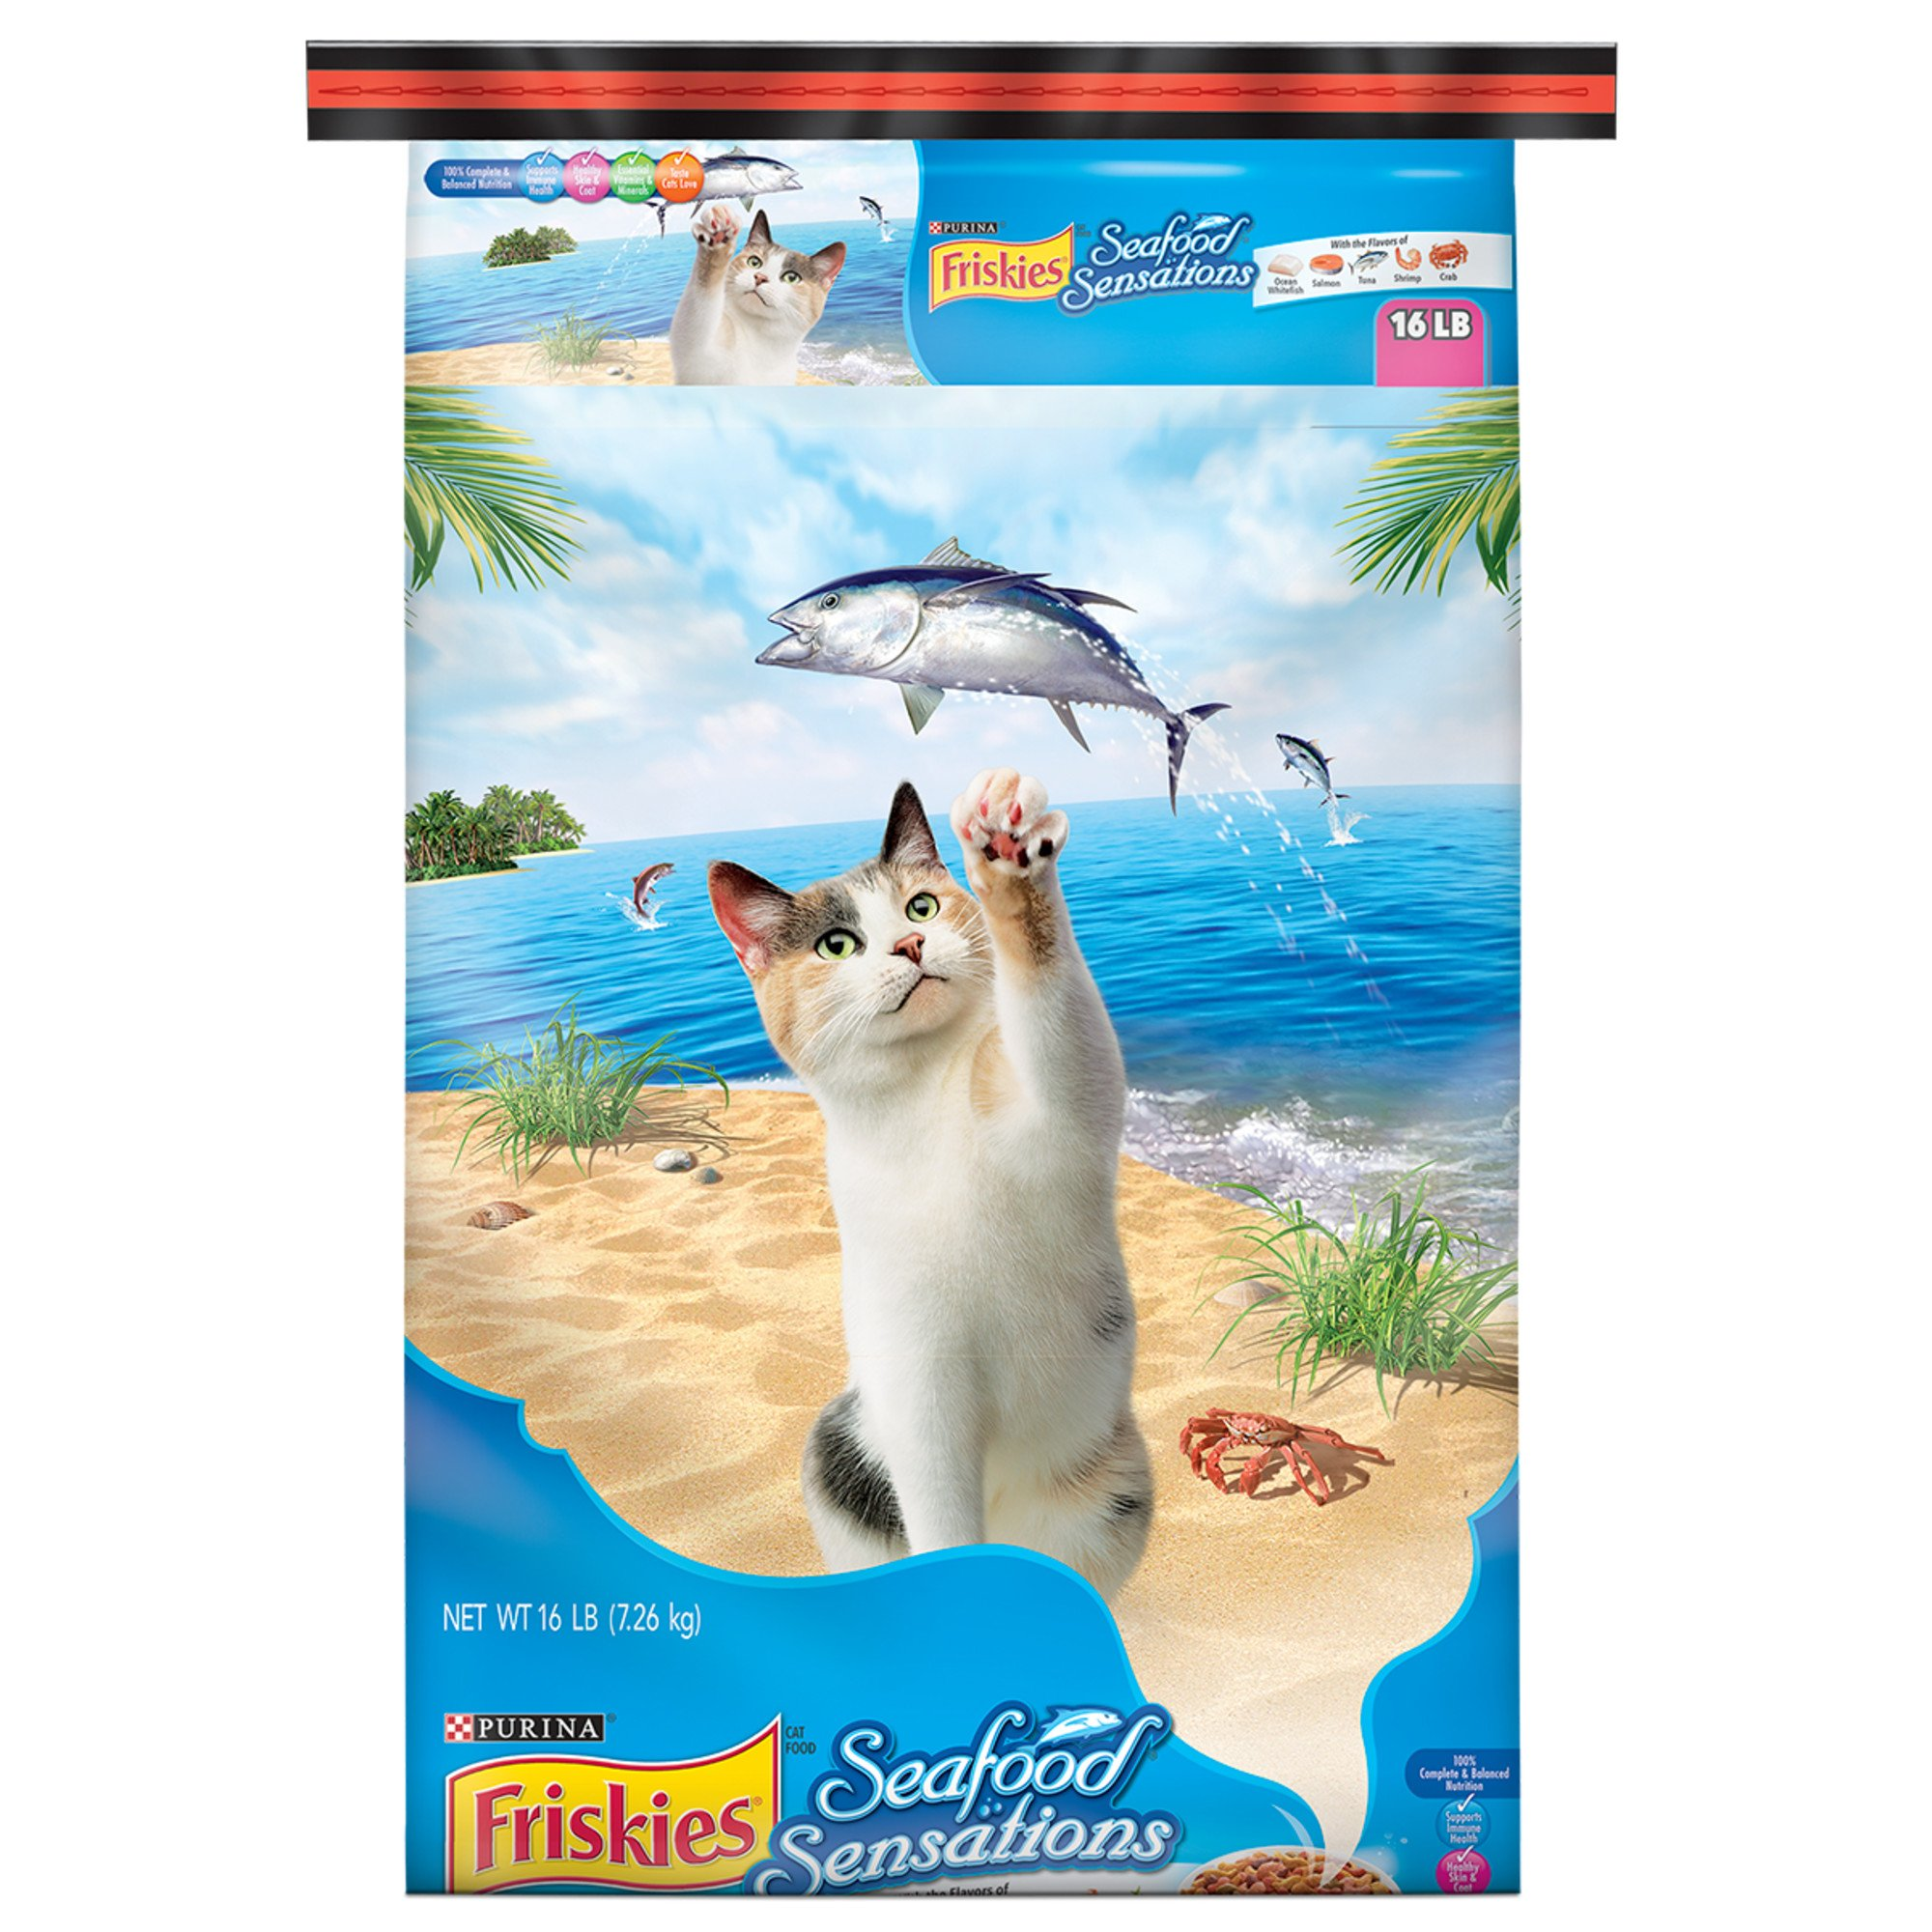 Friskies seafood sensations cat food petco for Friskies cat fishing